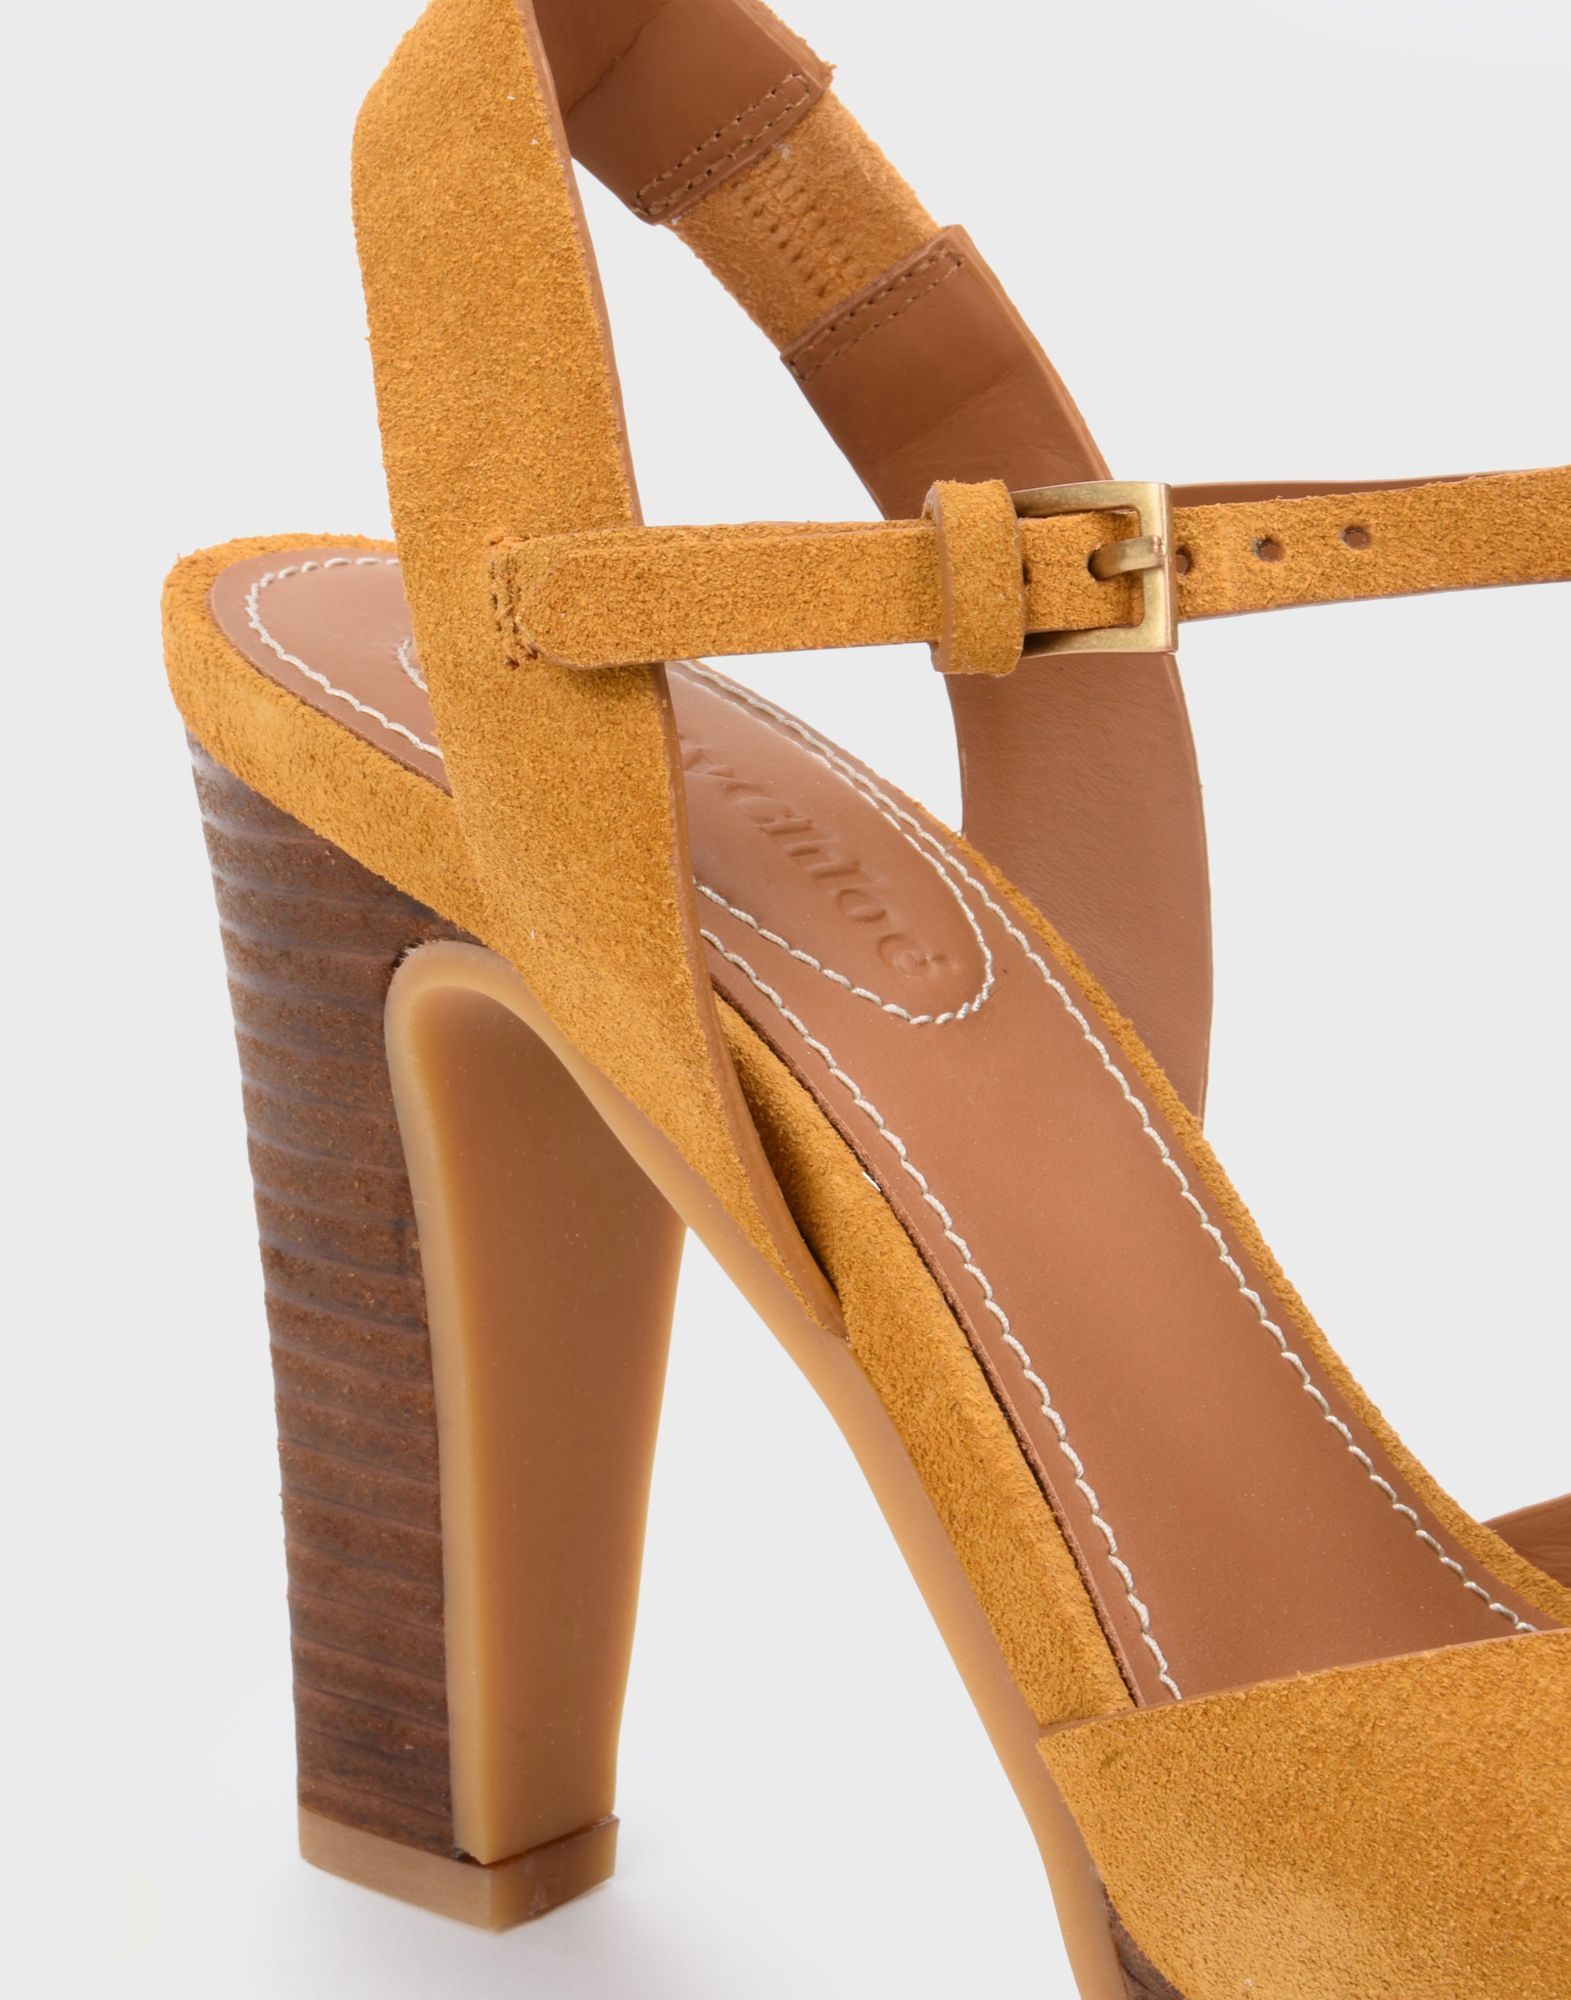 Sandales See By Chloé Femme - Sandales See By Chloé sur